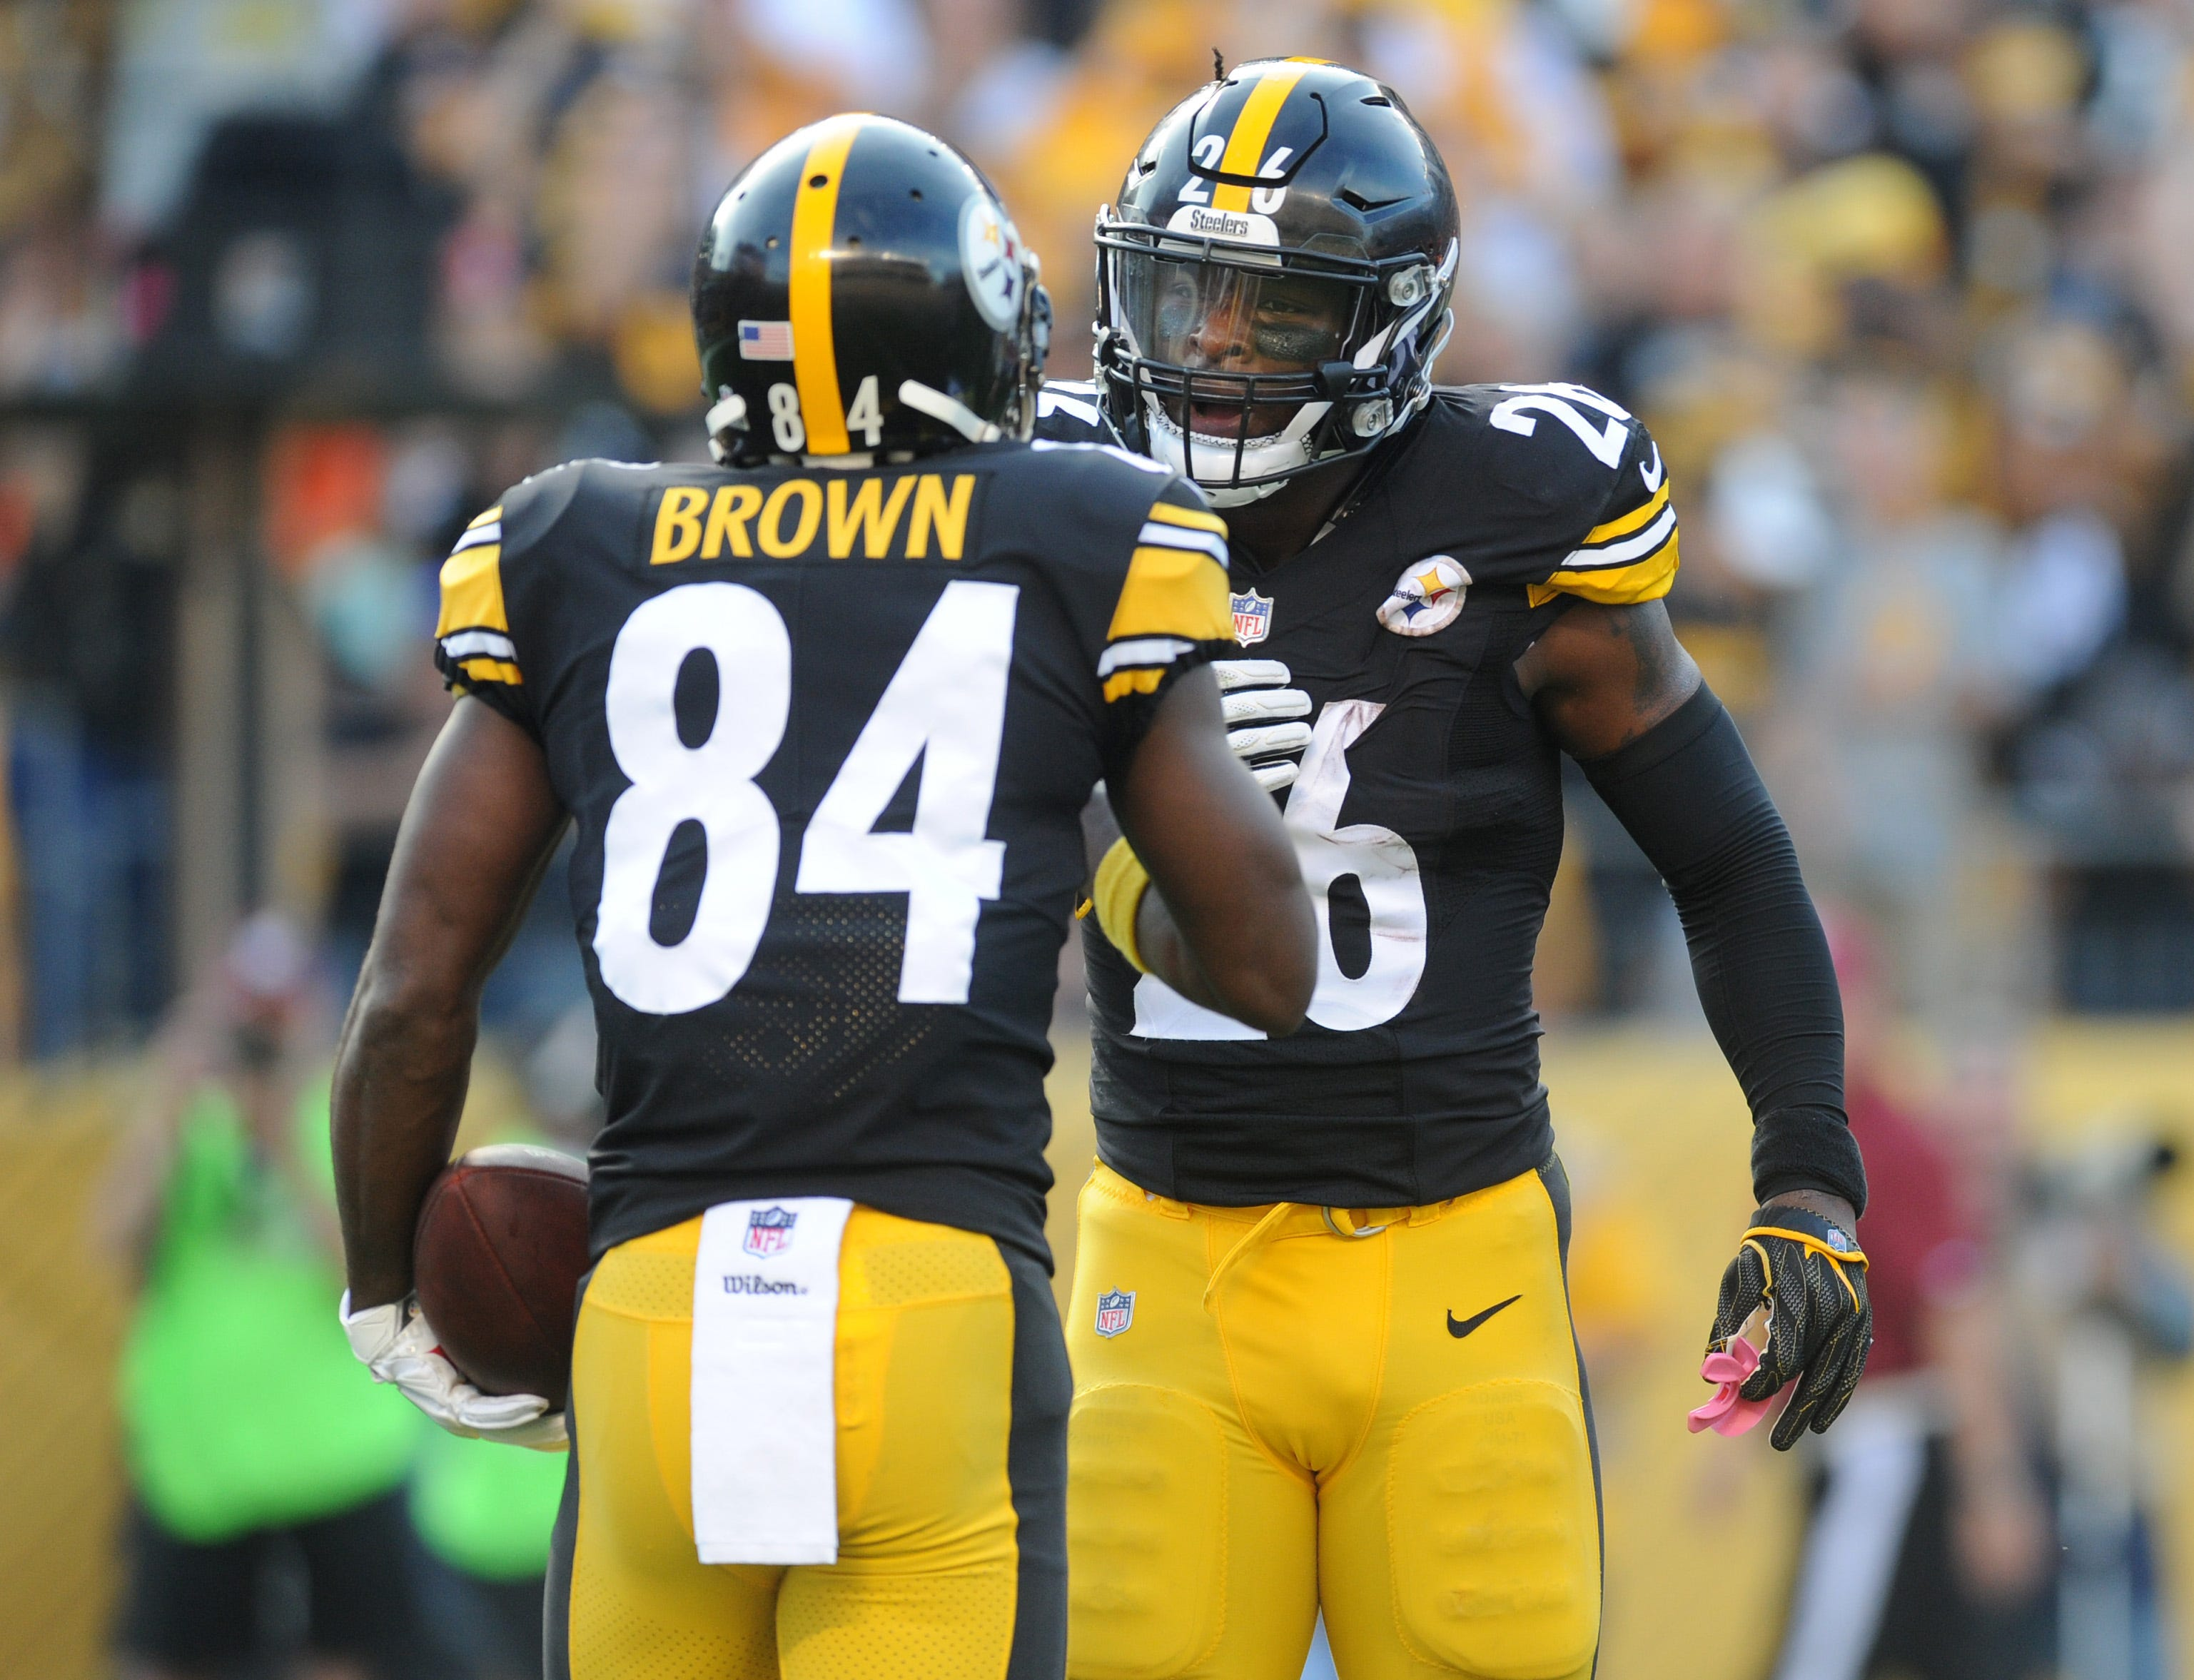 d38fd791833 Should the Bills consider acquiring Le'Veon Bell, Kareem Hunt or Antonio  Brown? Rochester Democrat And Chronicle - 06:15 AM ET January 09, ...